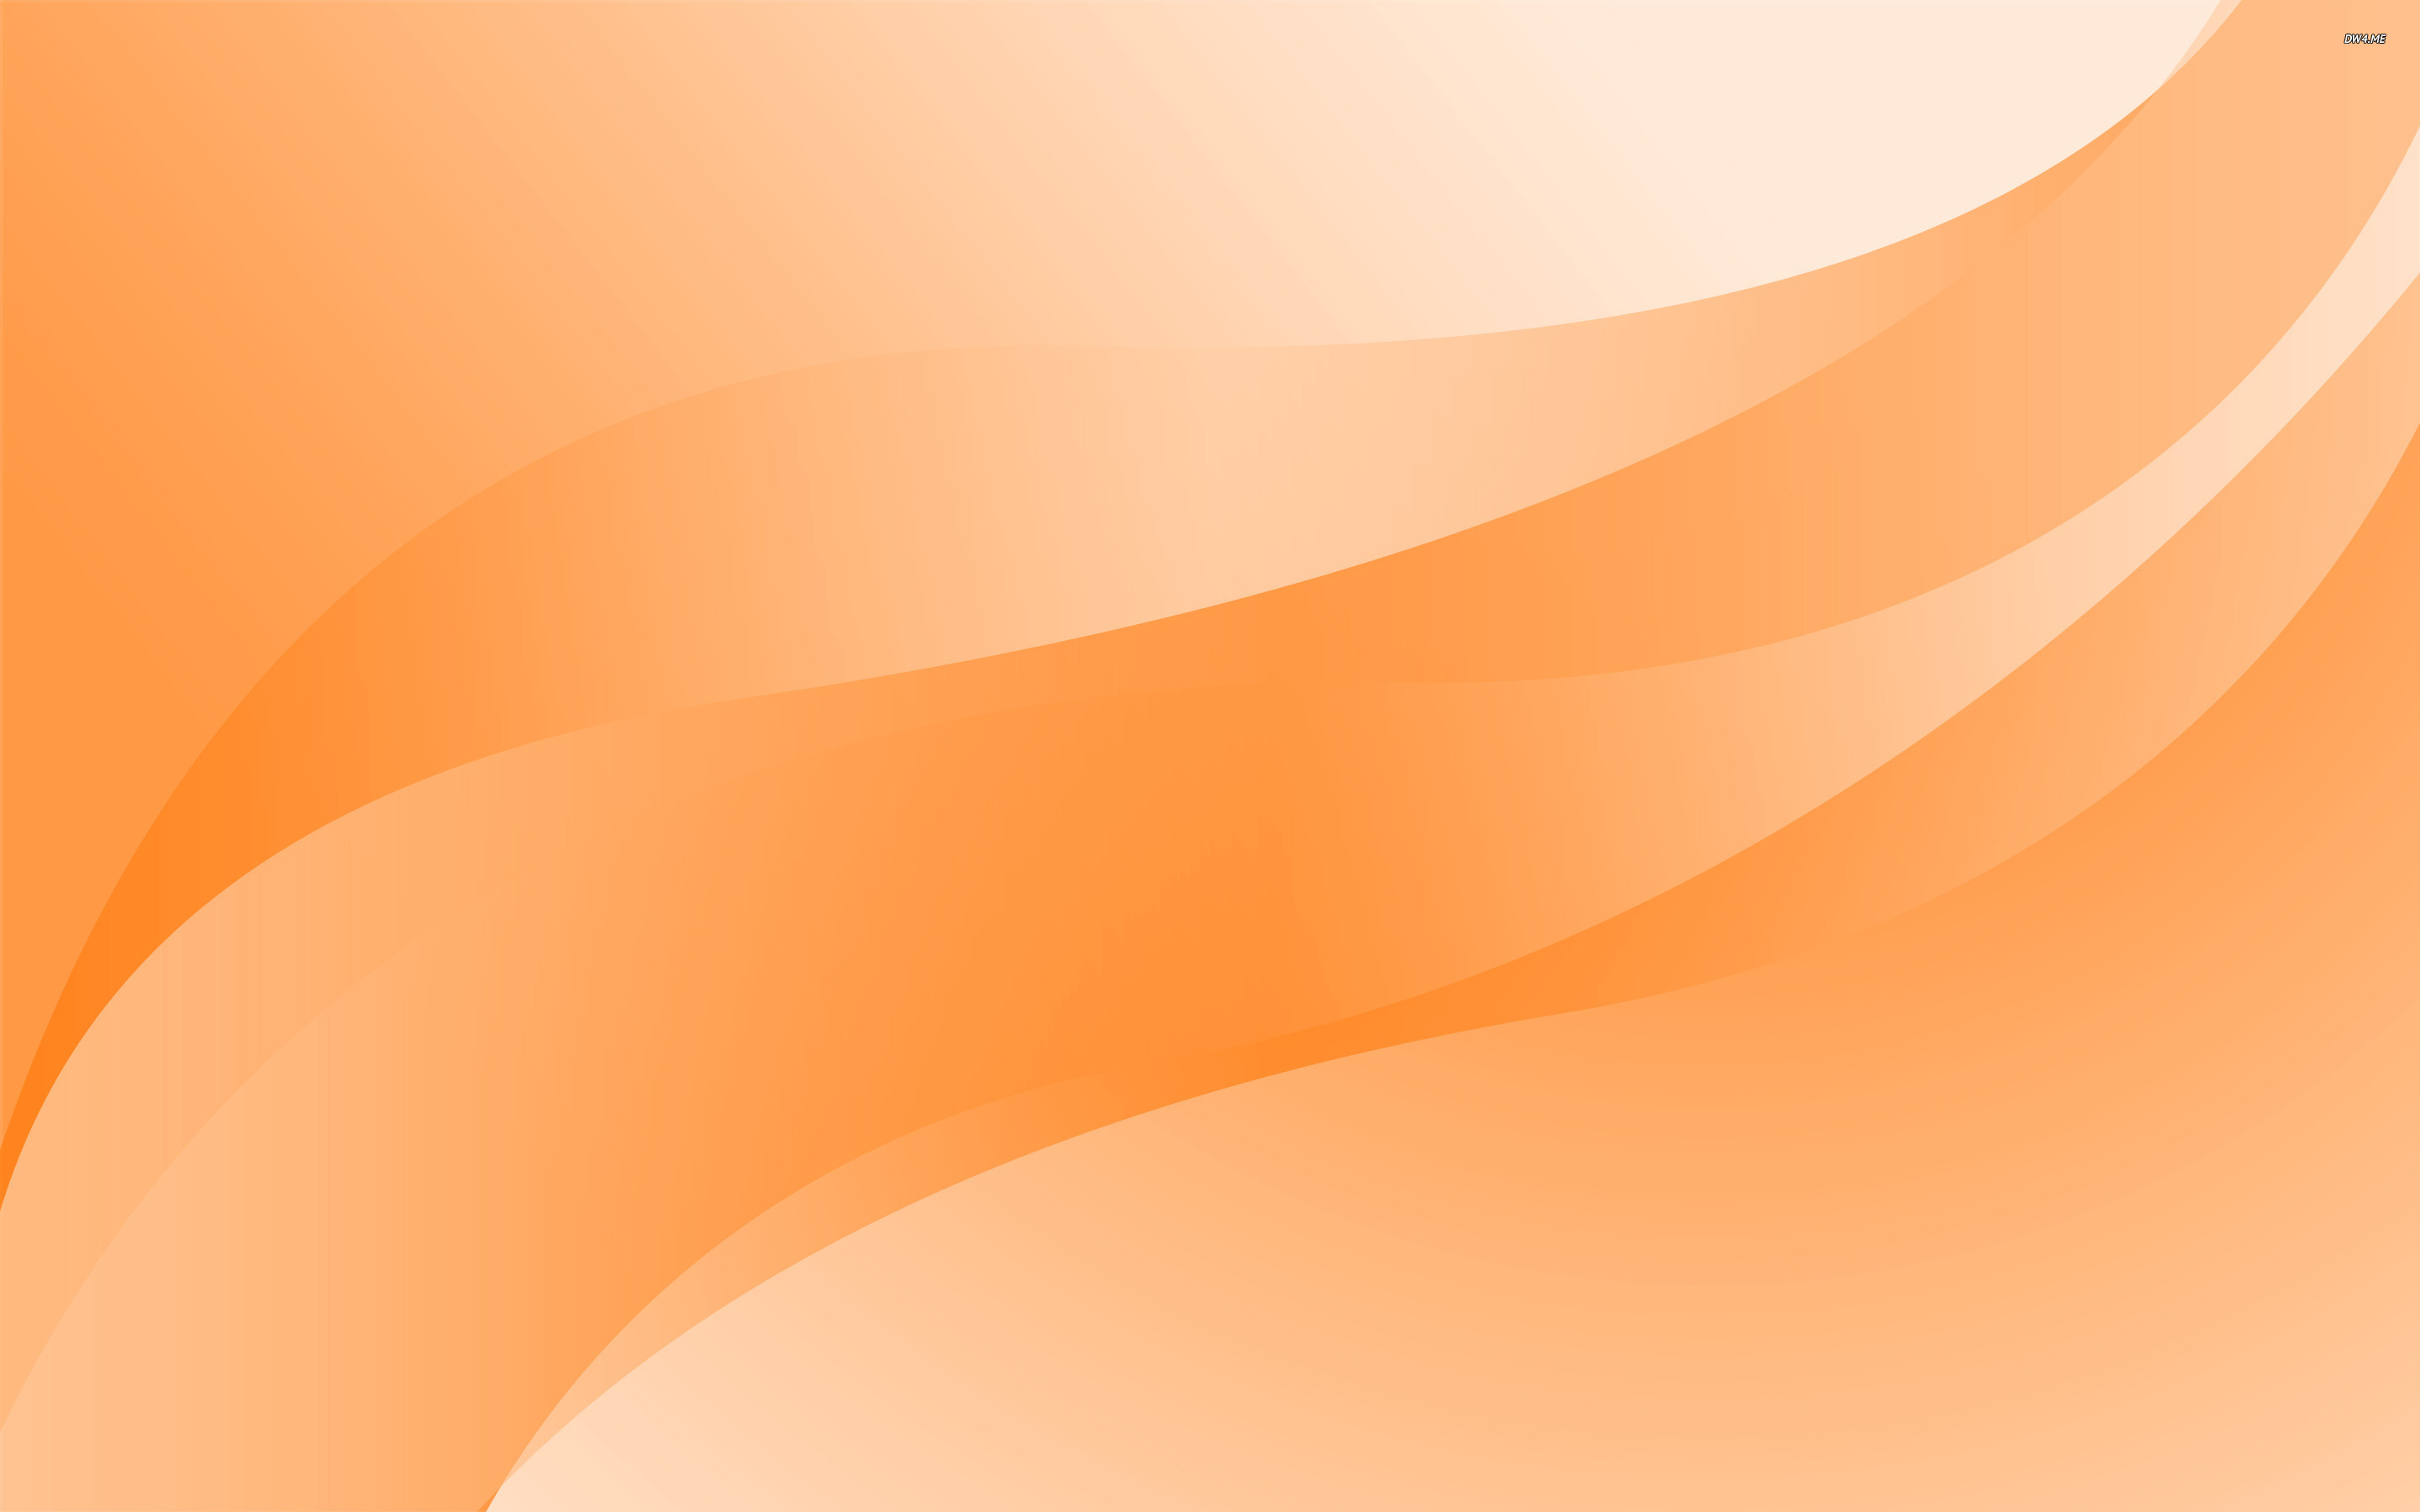 Abstract Orange Wallpaper - WallpaperSafari